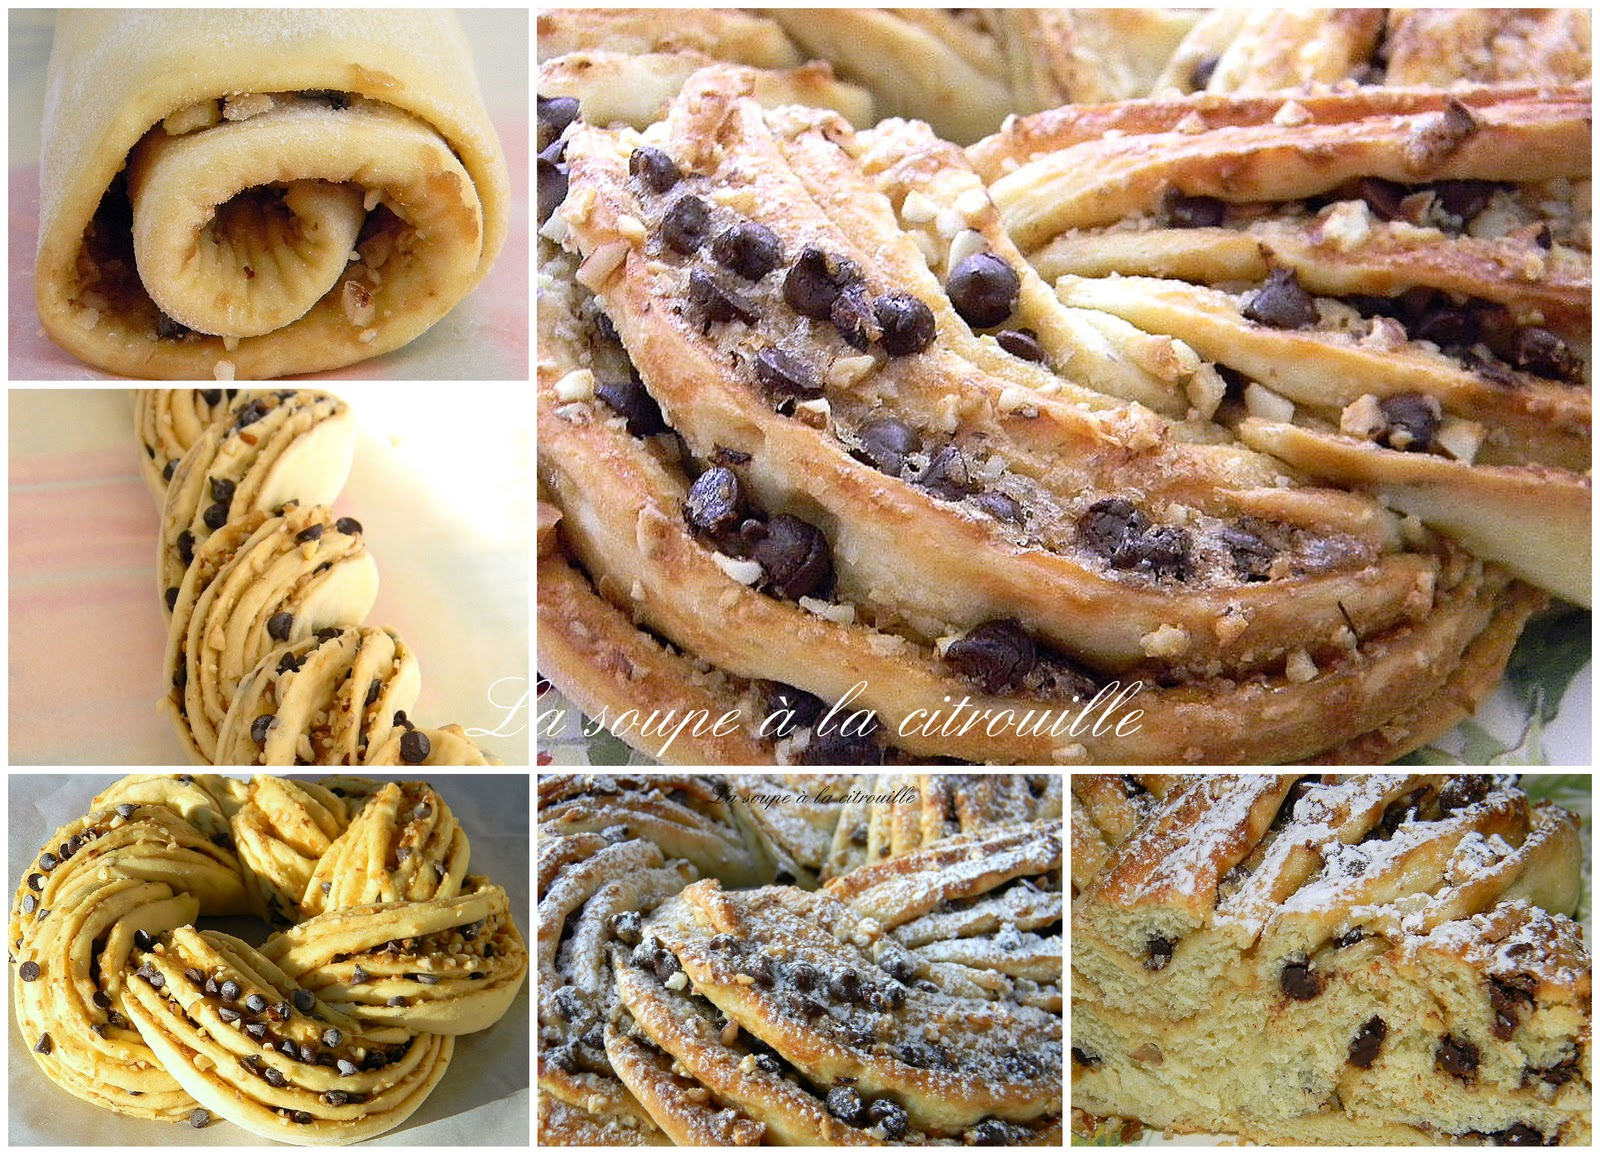 Apprentis cuistots : le coin des gourmets - Page 2 Mosaique+kringle